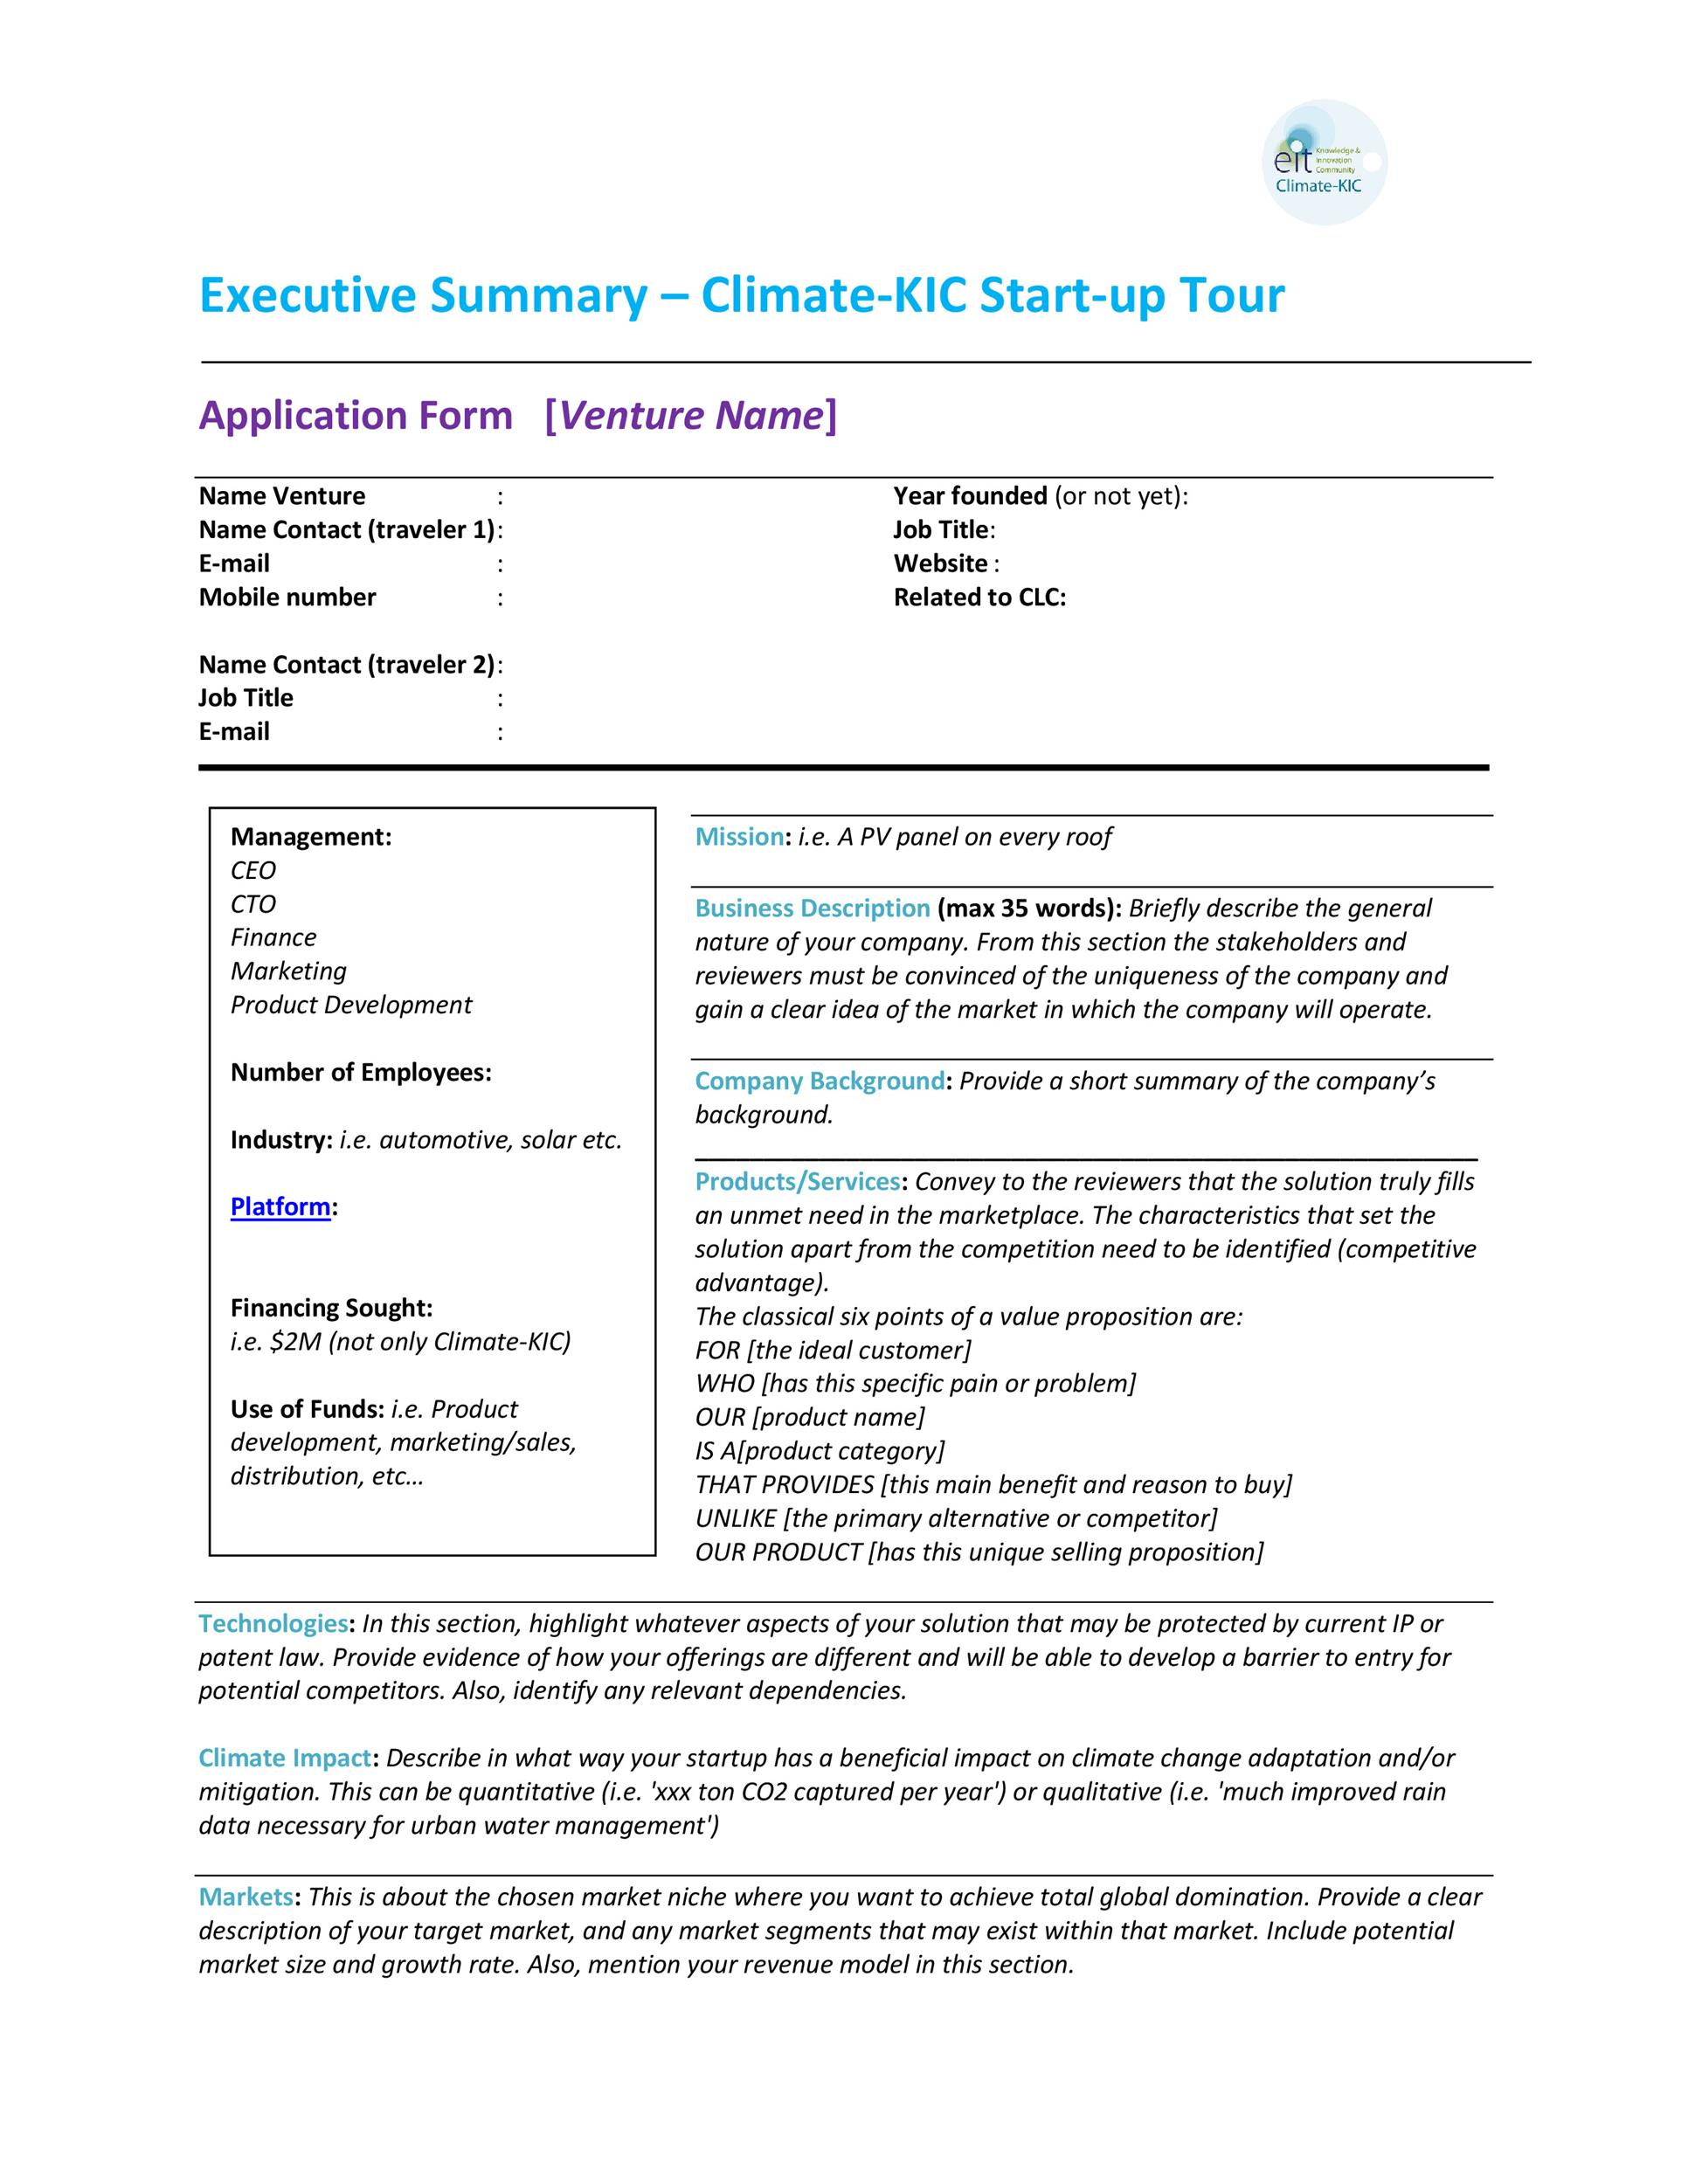 30+ Perfect Executive Summary Examples  Templates - Template Lab - business summary template